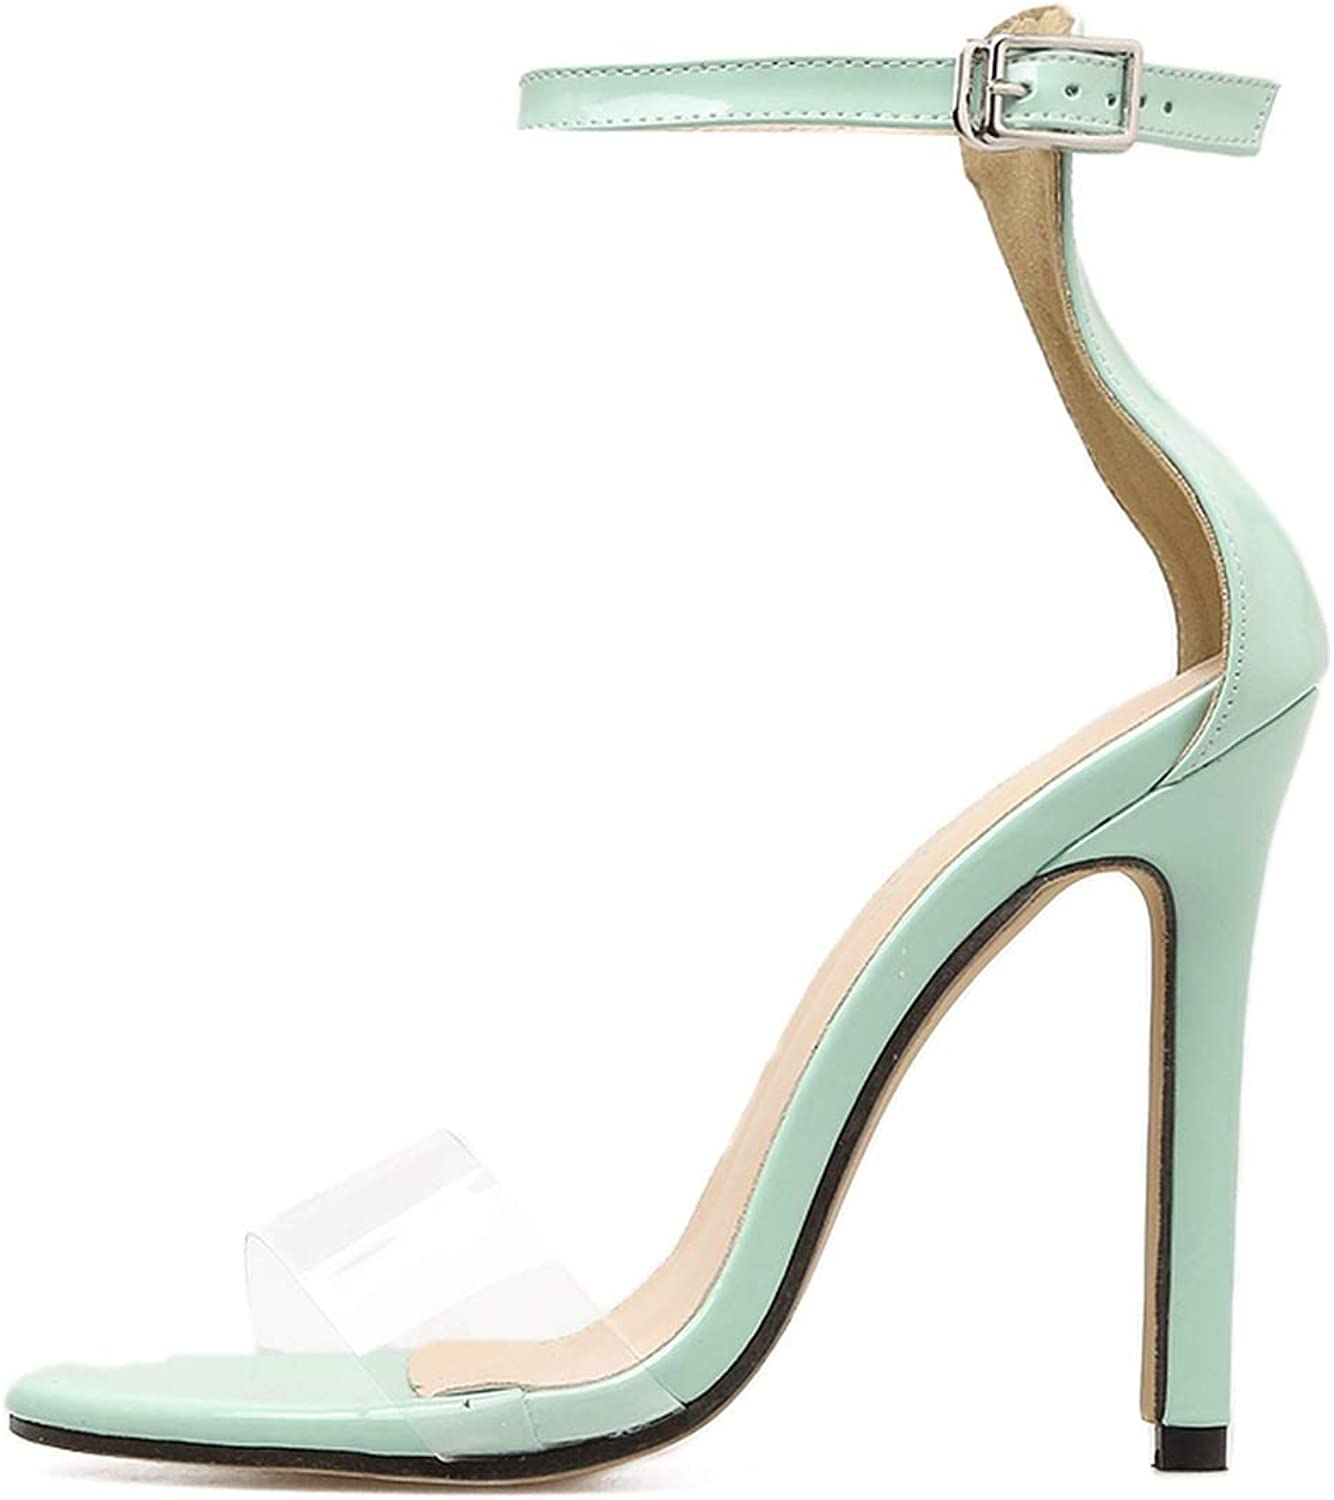 Transparent Sandals Buckle Ankle Strap Clear shoes Thin High Heels Woman shoes